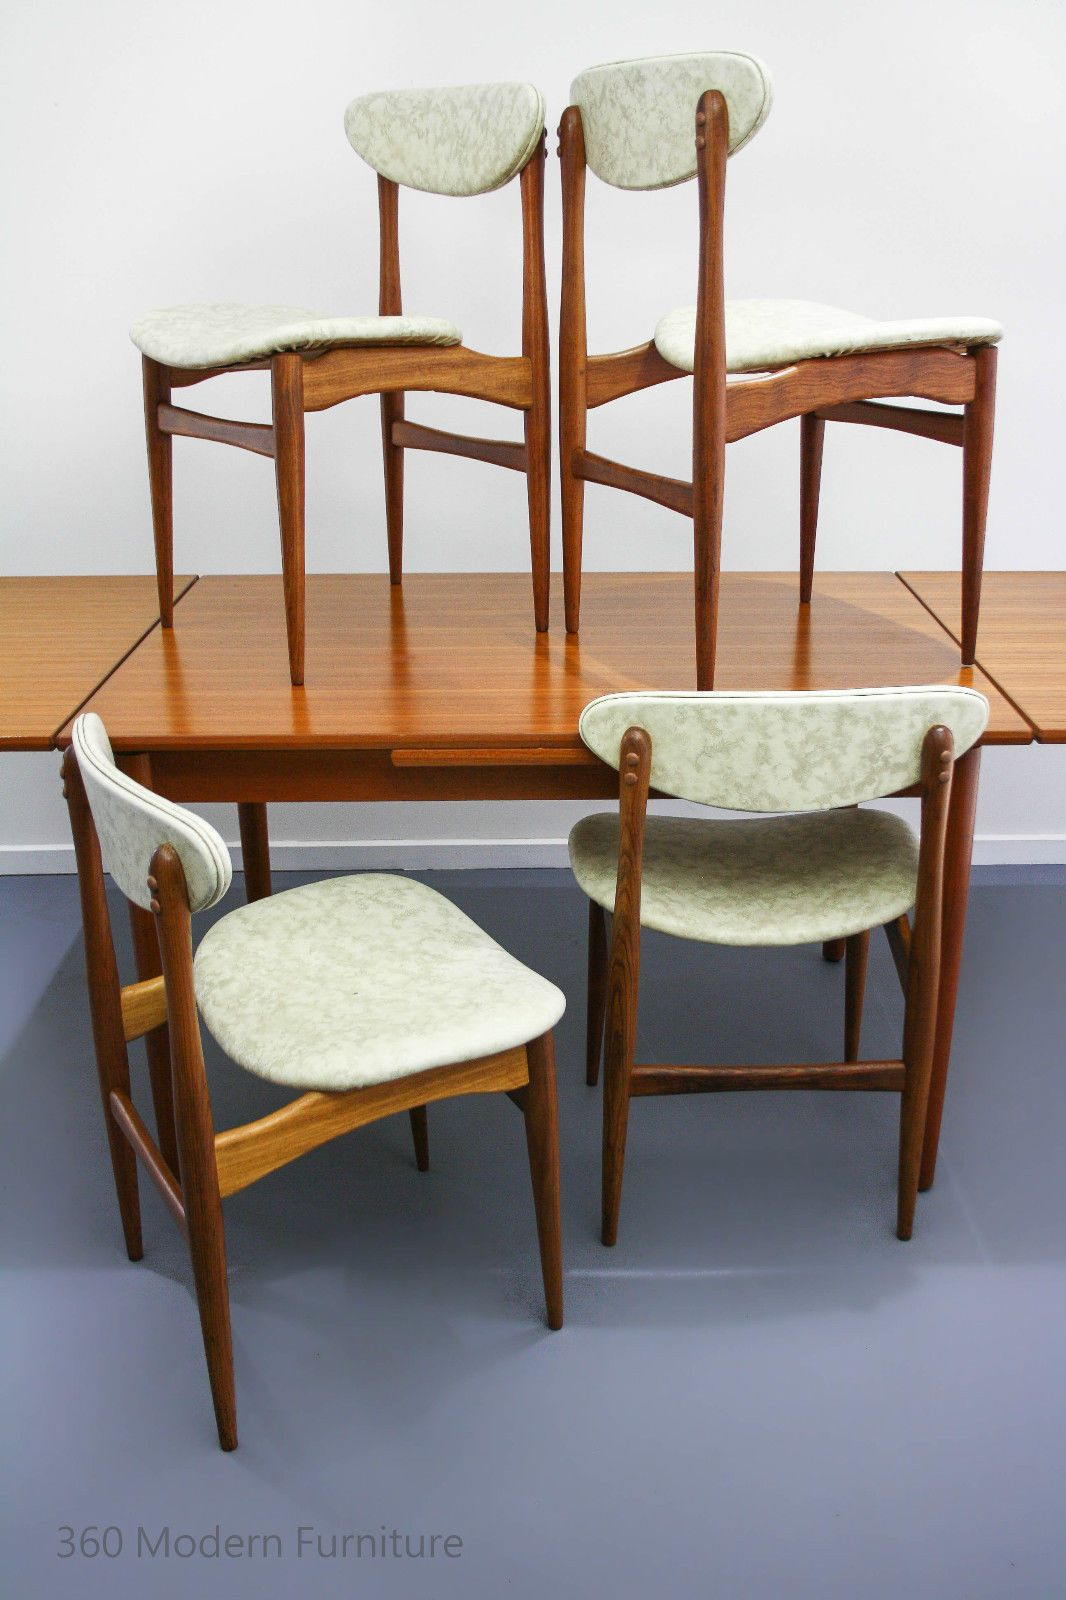 Mid Century Teak Dining Chairs X 4 Vintage Retro Danish Parker Eames Scandi Era Mid Century Dining Chairs Furniture Modern Furniture